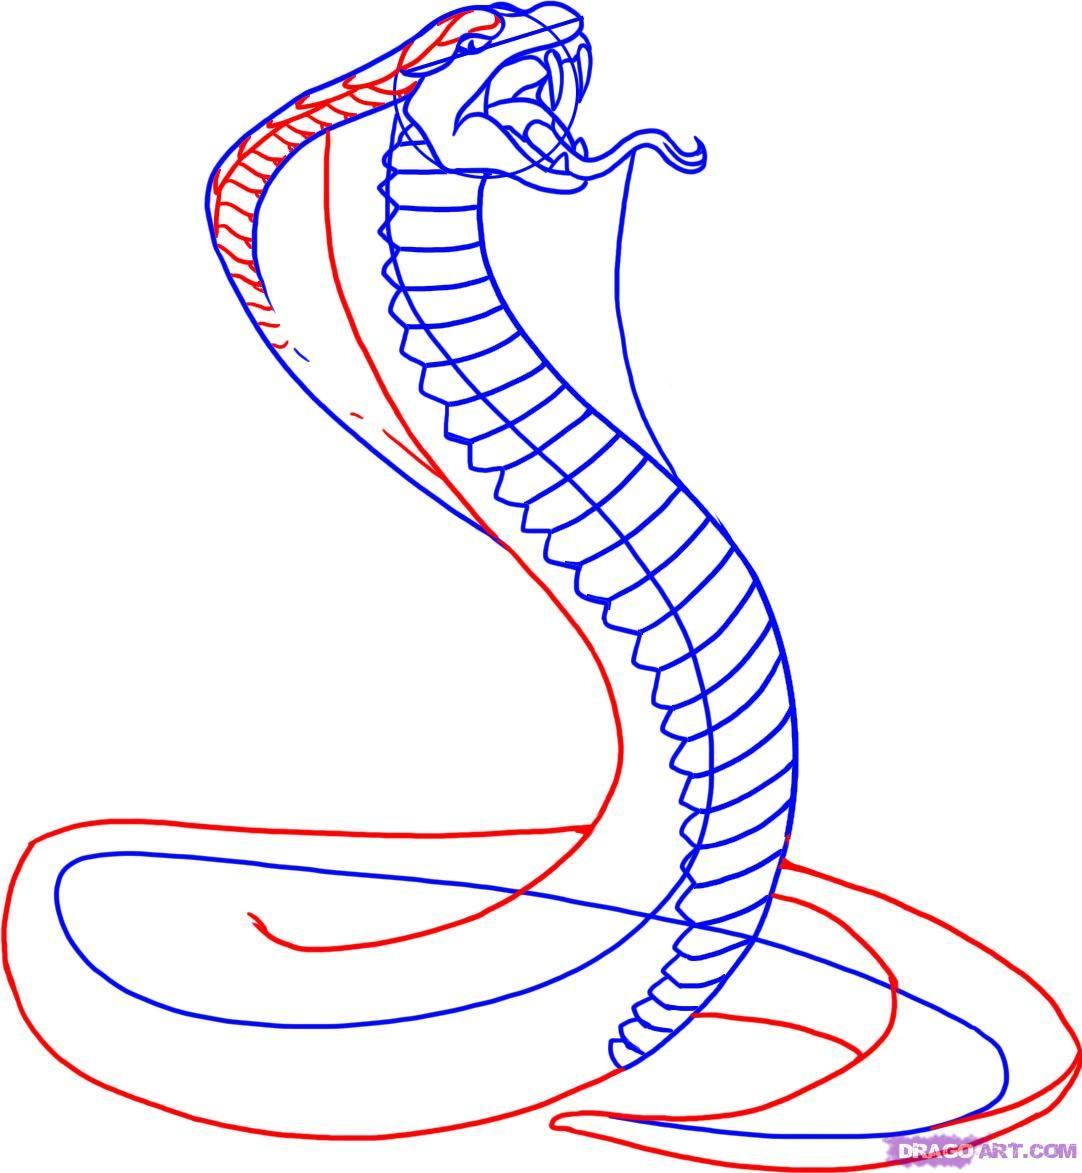 1082x1173 How To Draw A King Cobra Snake